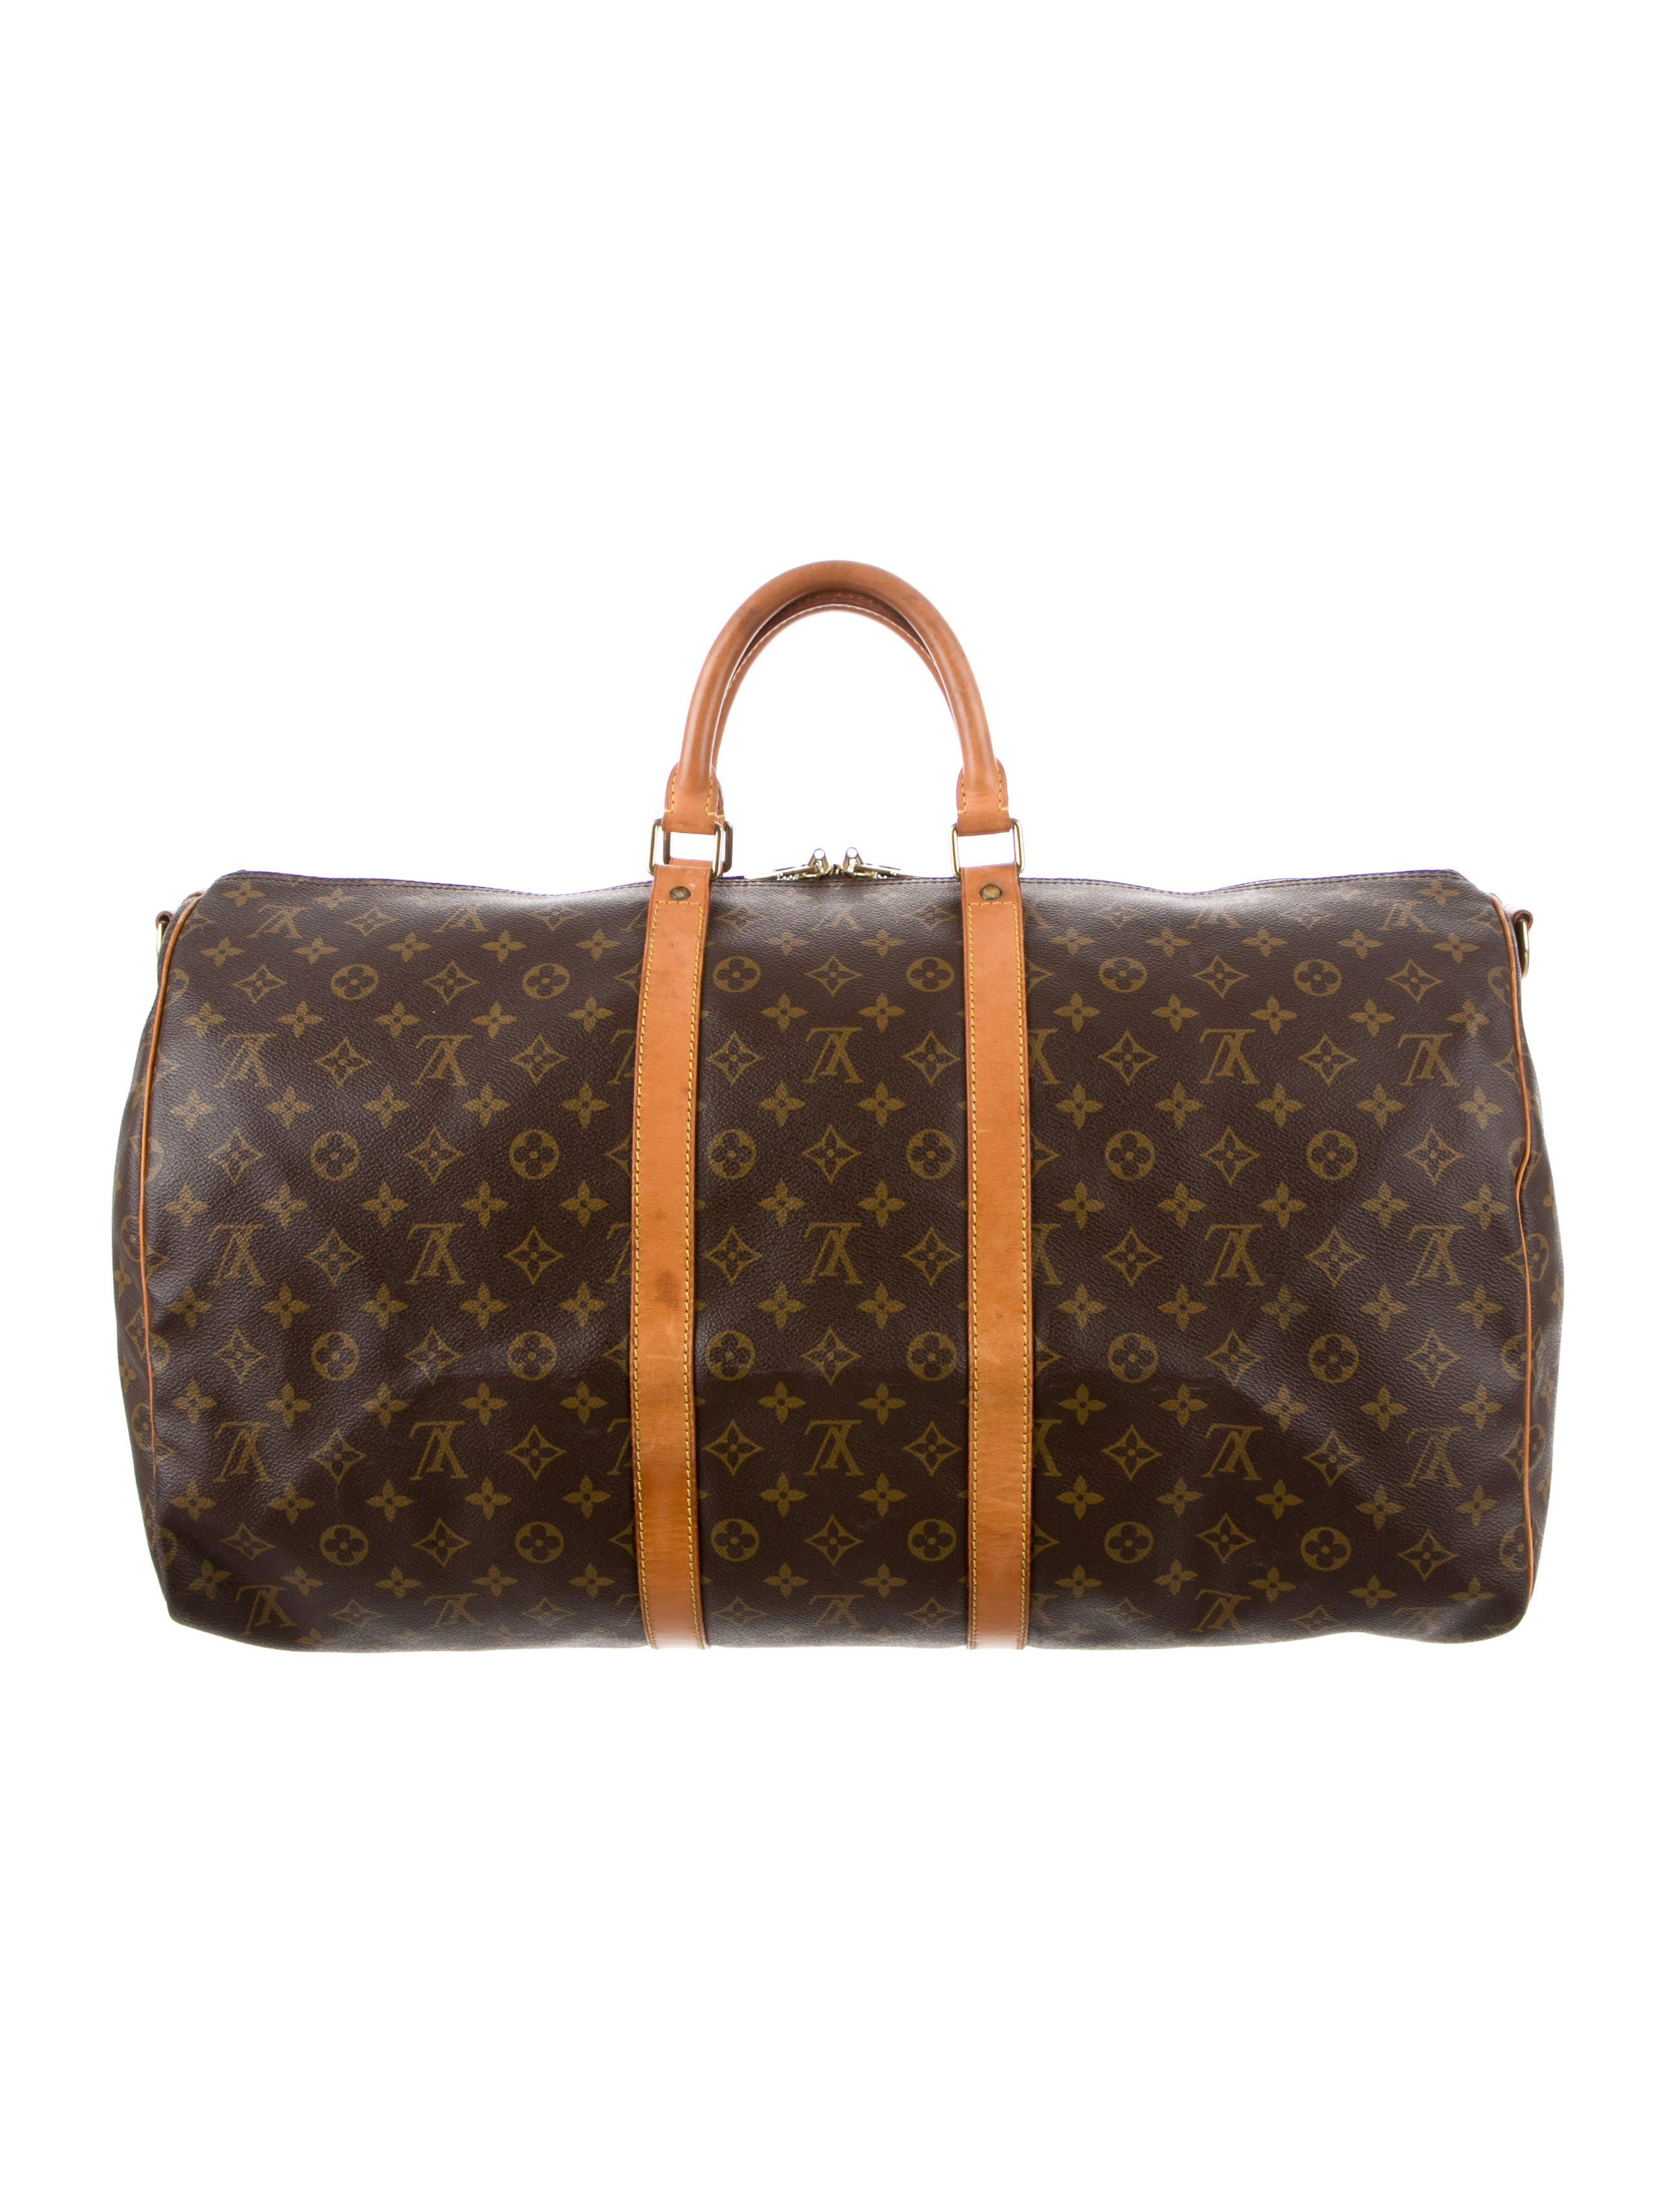 84f3334a1 Brown and tan monogram coated canvas Louis Vuitton Keepall Bandouli¨¨re 60  with brass hardware, tan vachetta leather trim, single adjustable flat  detachable